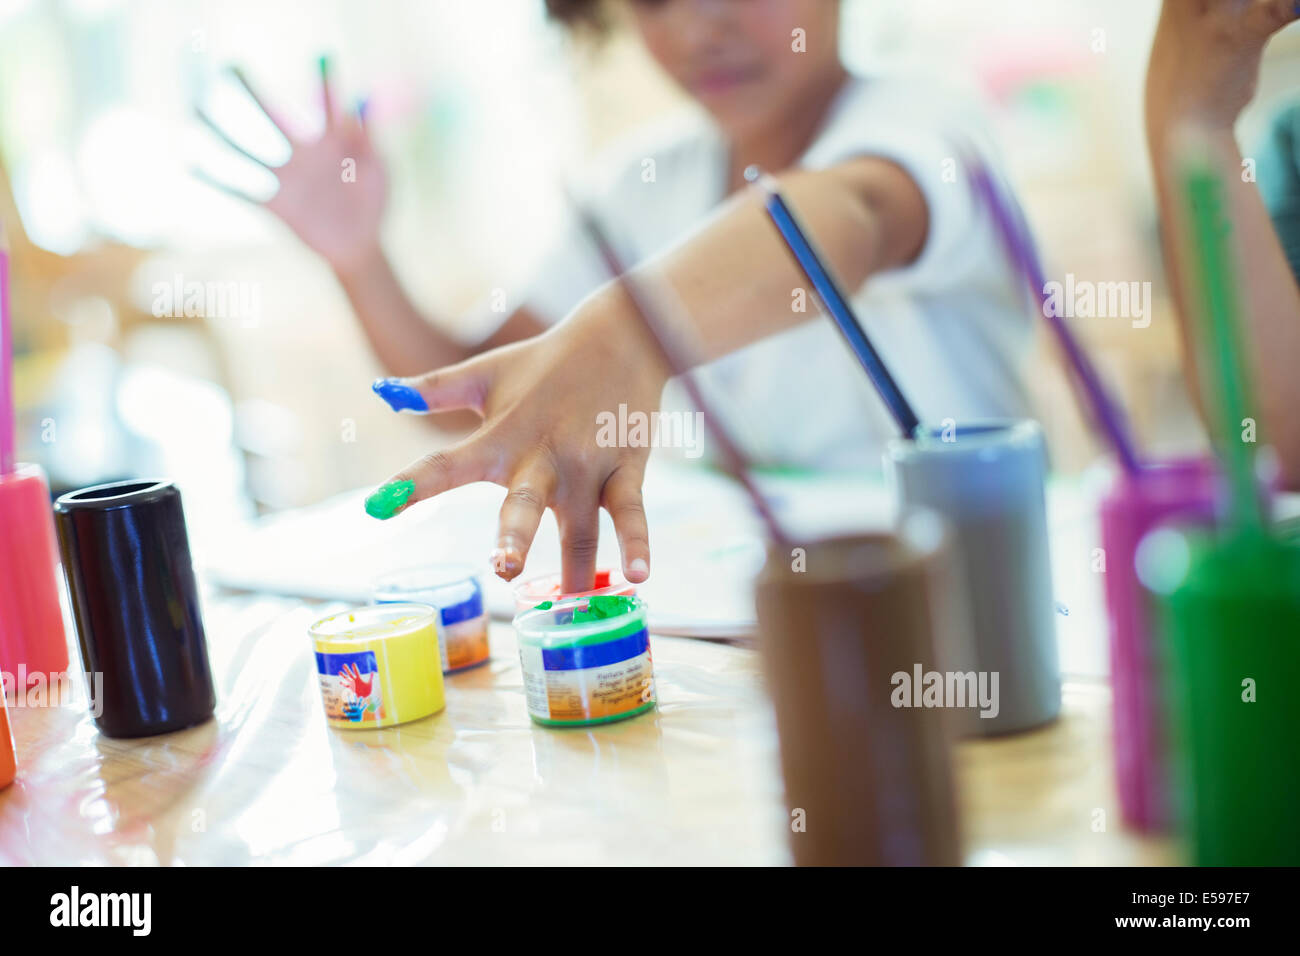 Student finger painting in class - Stock Image